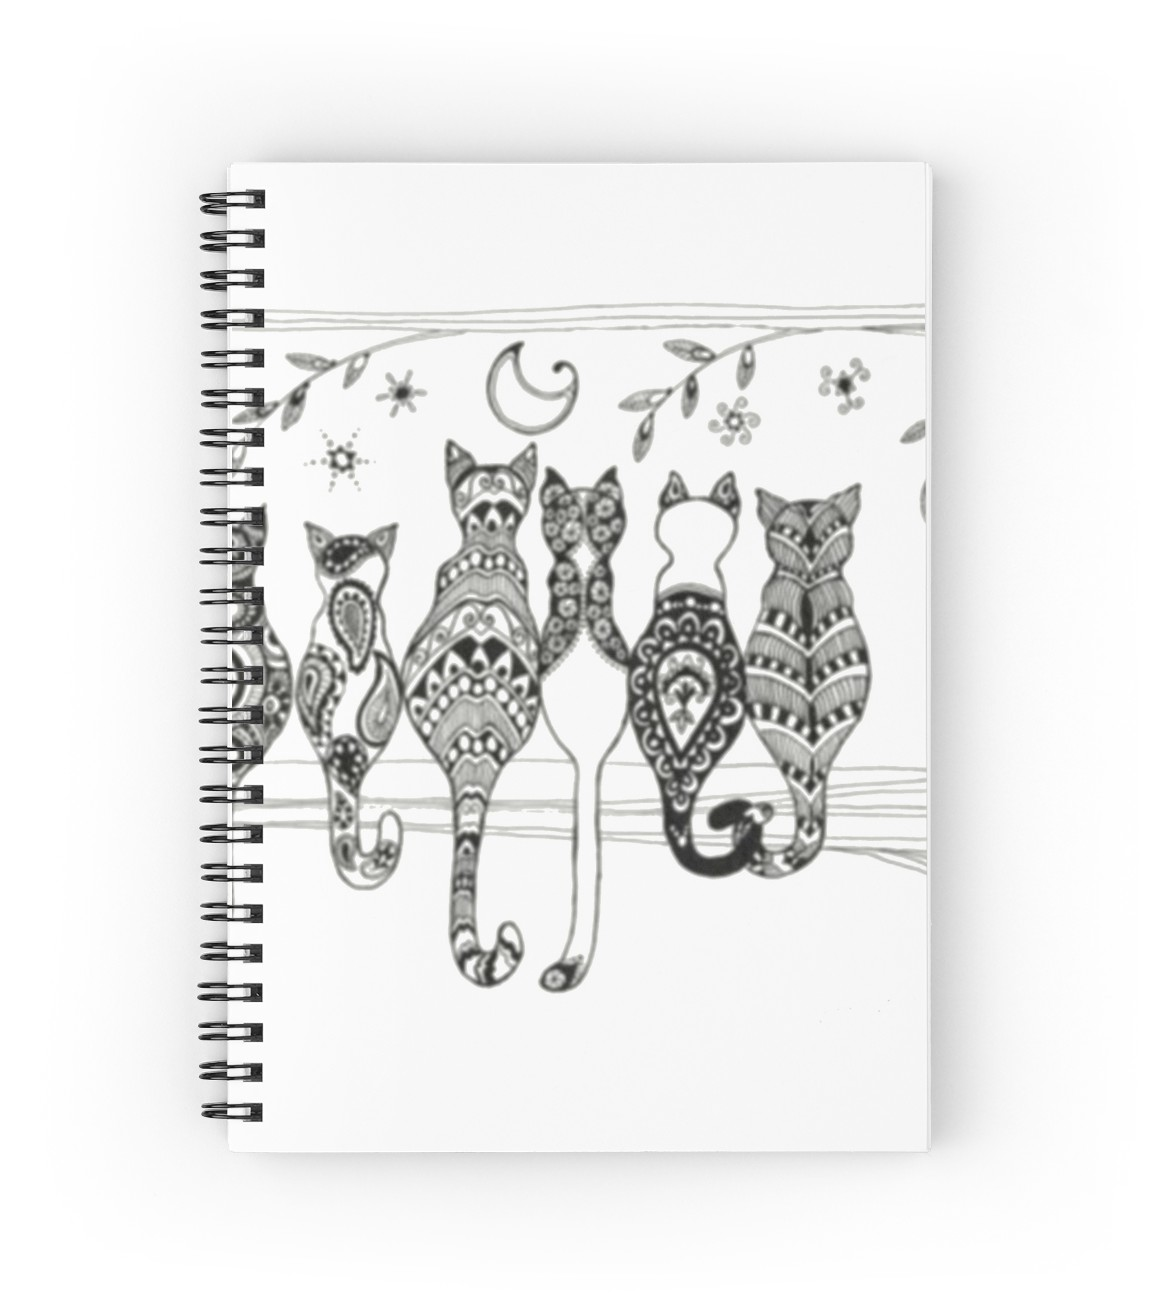 1171x1313 Draw Cat Spiral Notebooks By Bloodymanson Redbubble